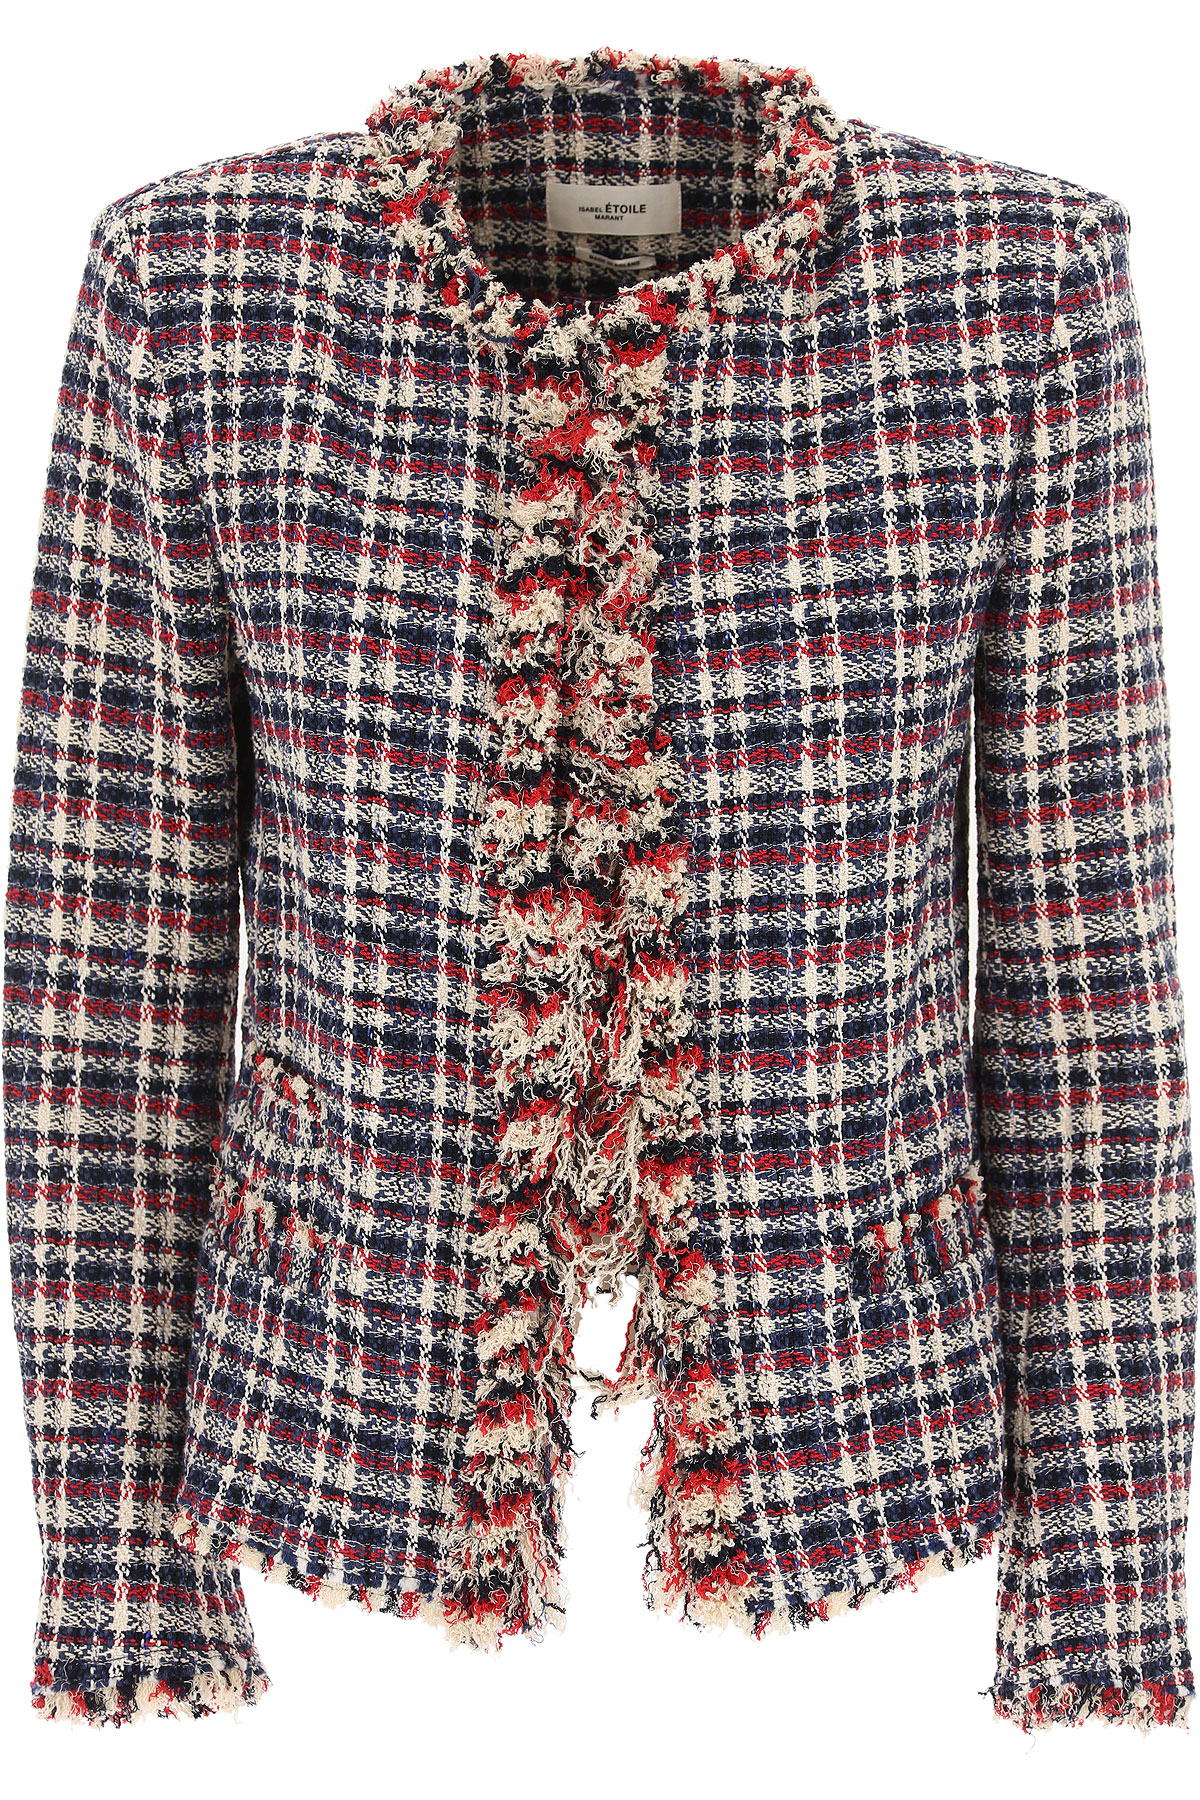 Image of Isabel Marant Blazer for Women, Red, Cotton, 2017, 2